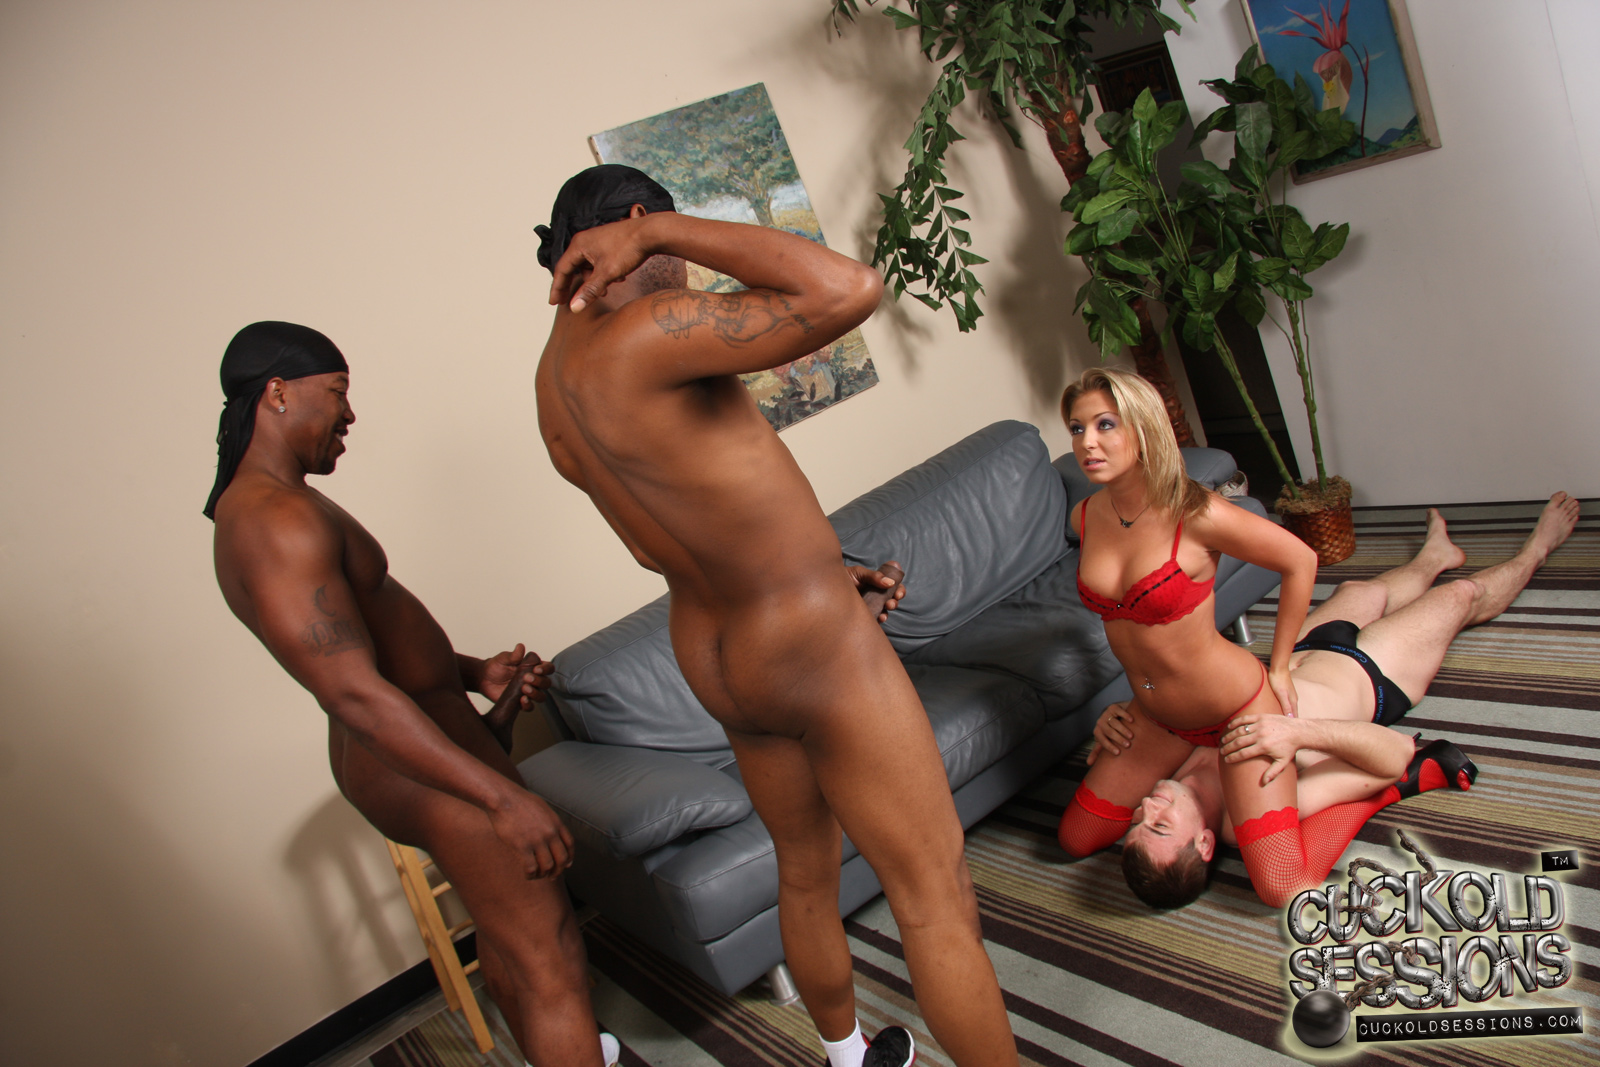 galleries cuckoldsessions content jaelyn fox pic 05